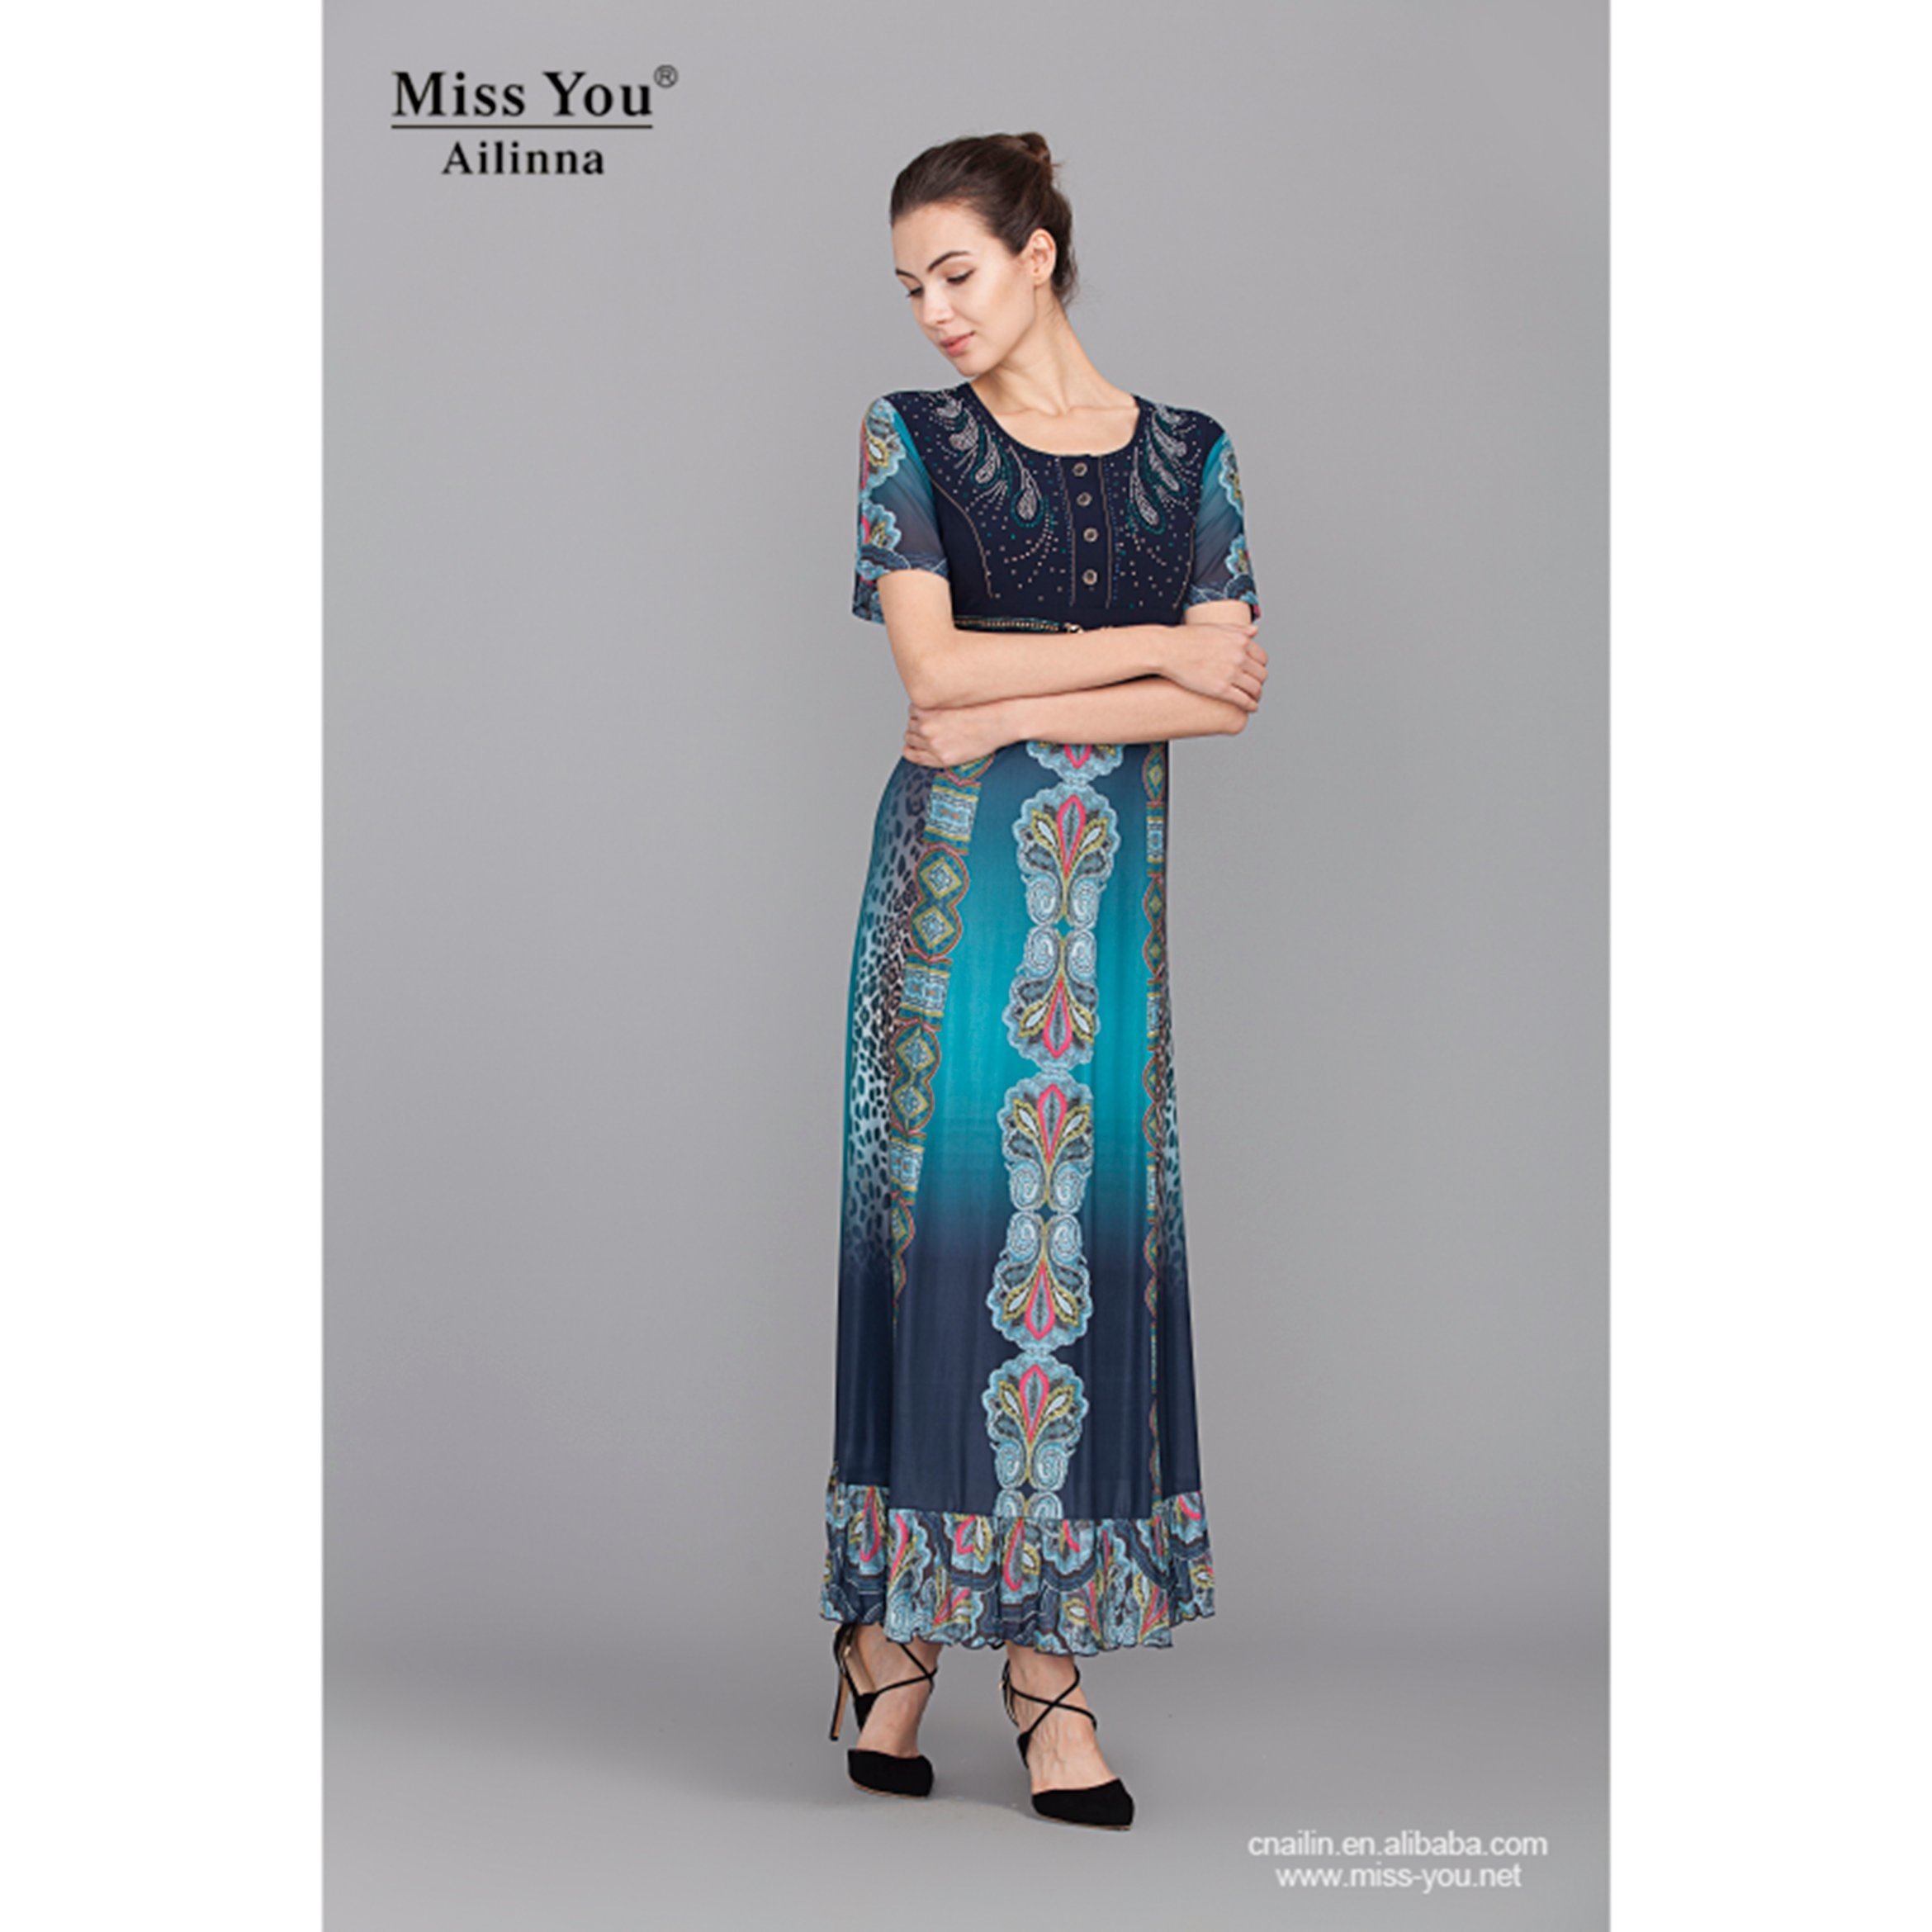 Miss You Ailinna 101972 Slim Long Dress Elegant Dress with High Quality